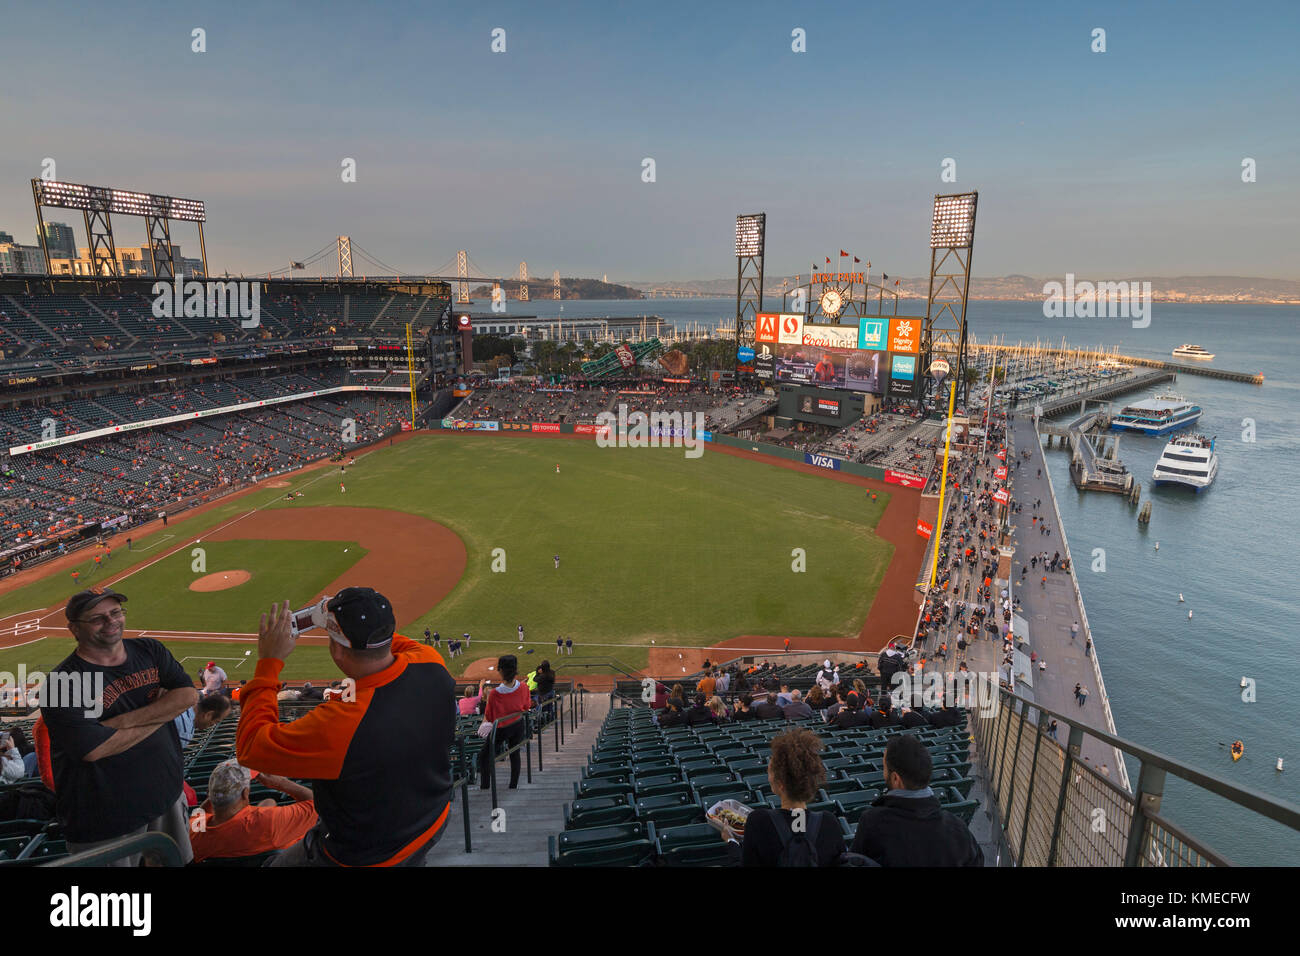 ATT Ballpark, home of San Francisco Giants baseball team, San Francisco, California, USA - Stock Image